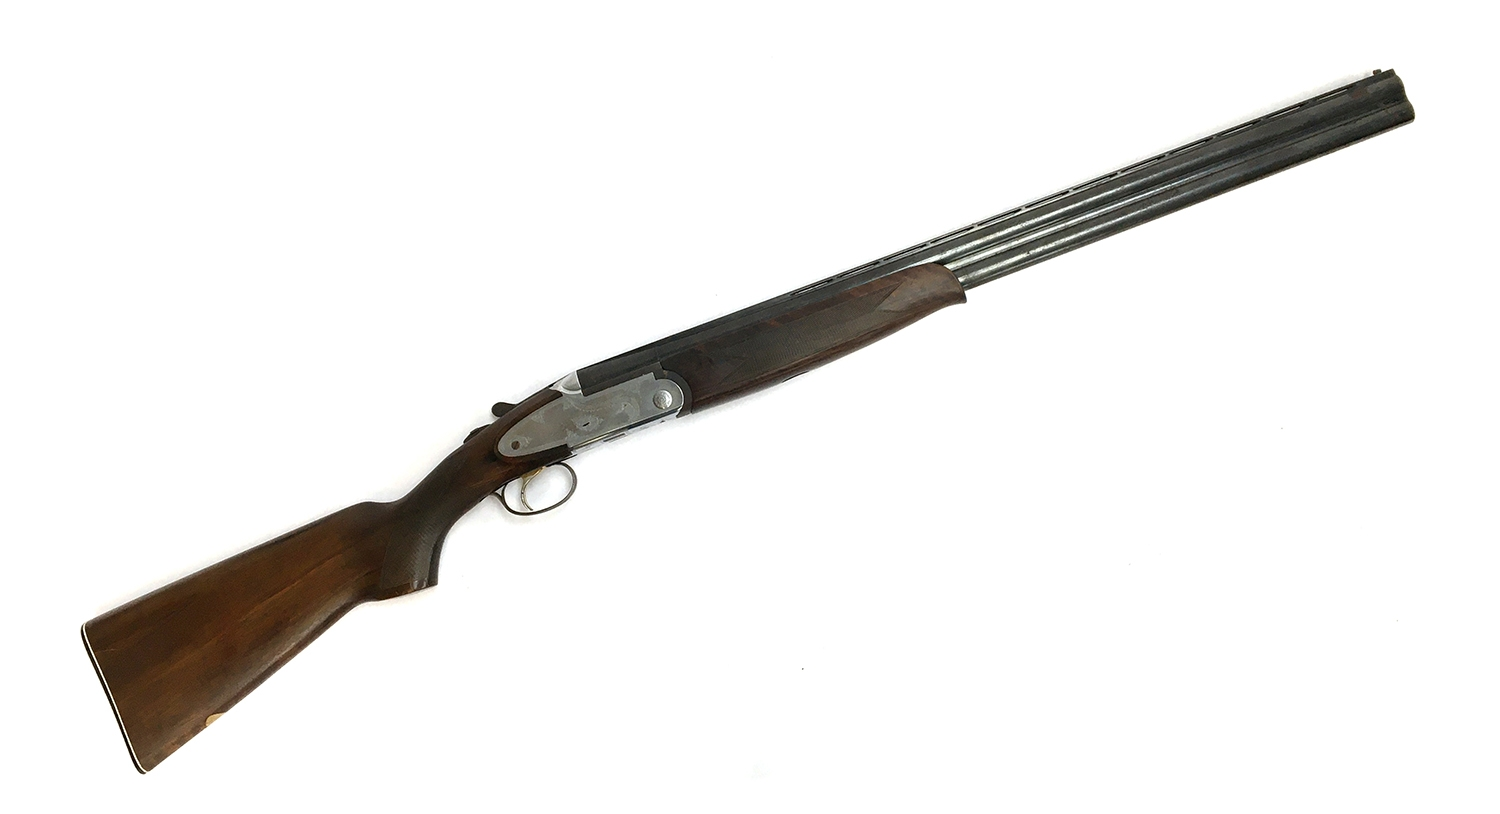 A Lincoln 12 bore over and under single trigger ejector shotgun, auto-safe, semi-pistol grip, - Image 2 of 2